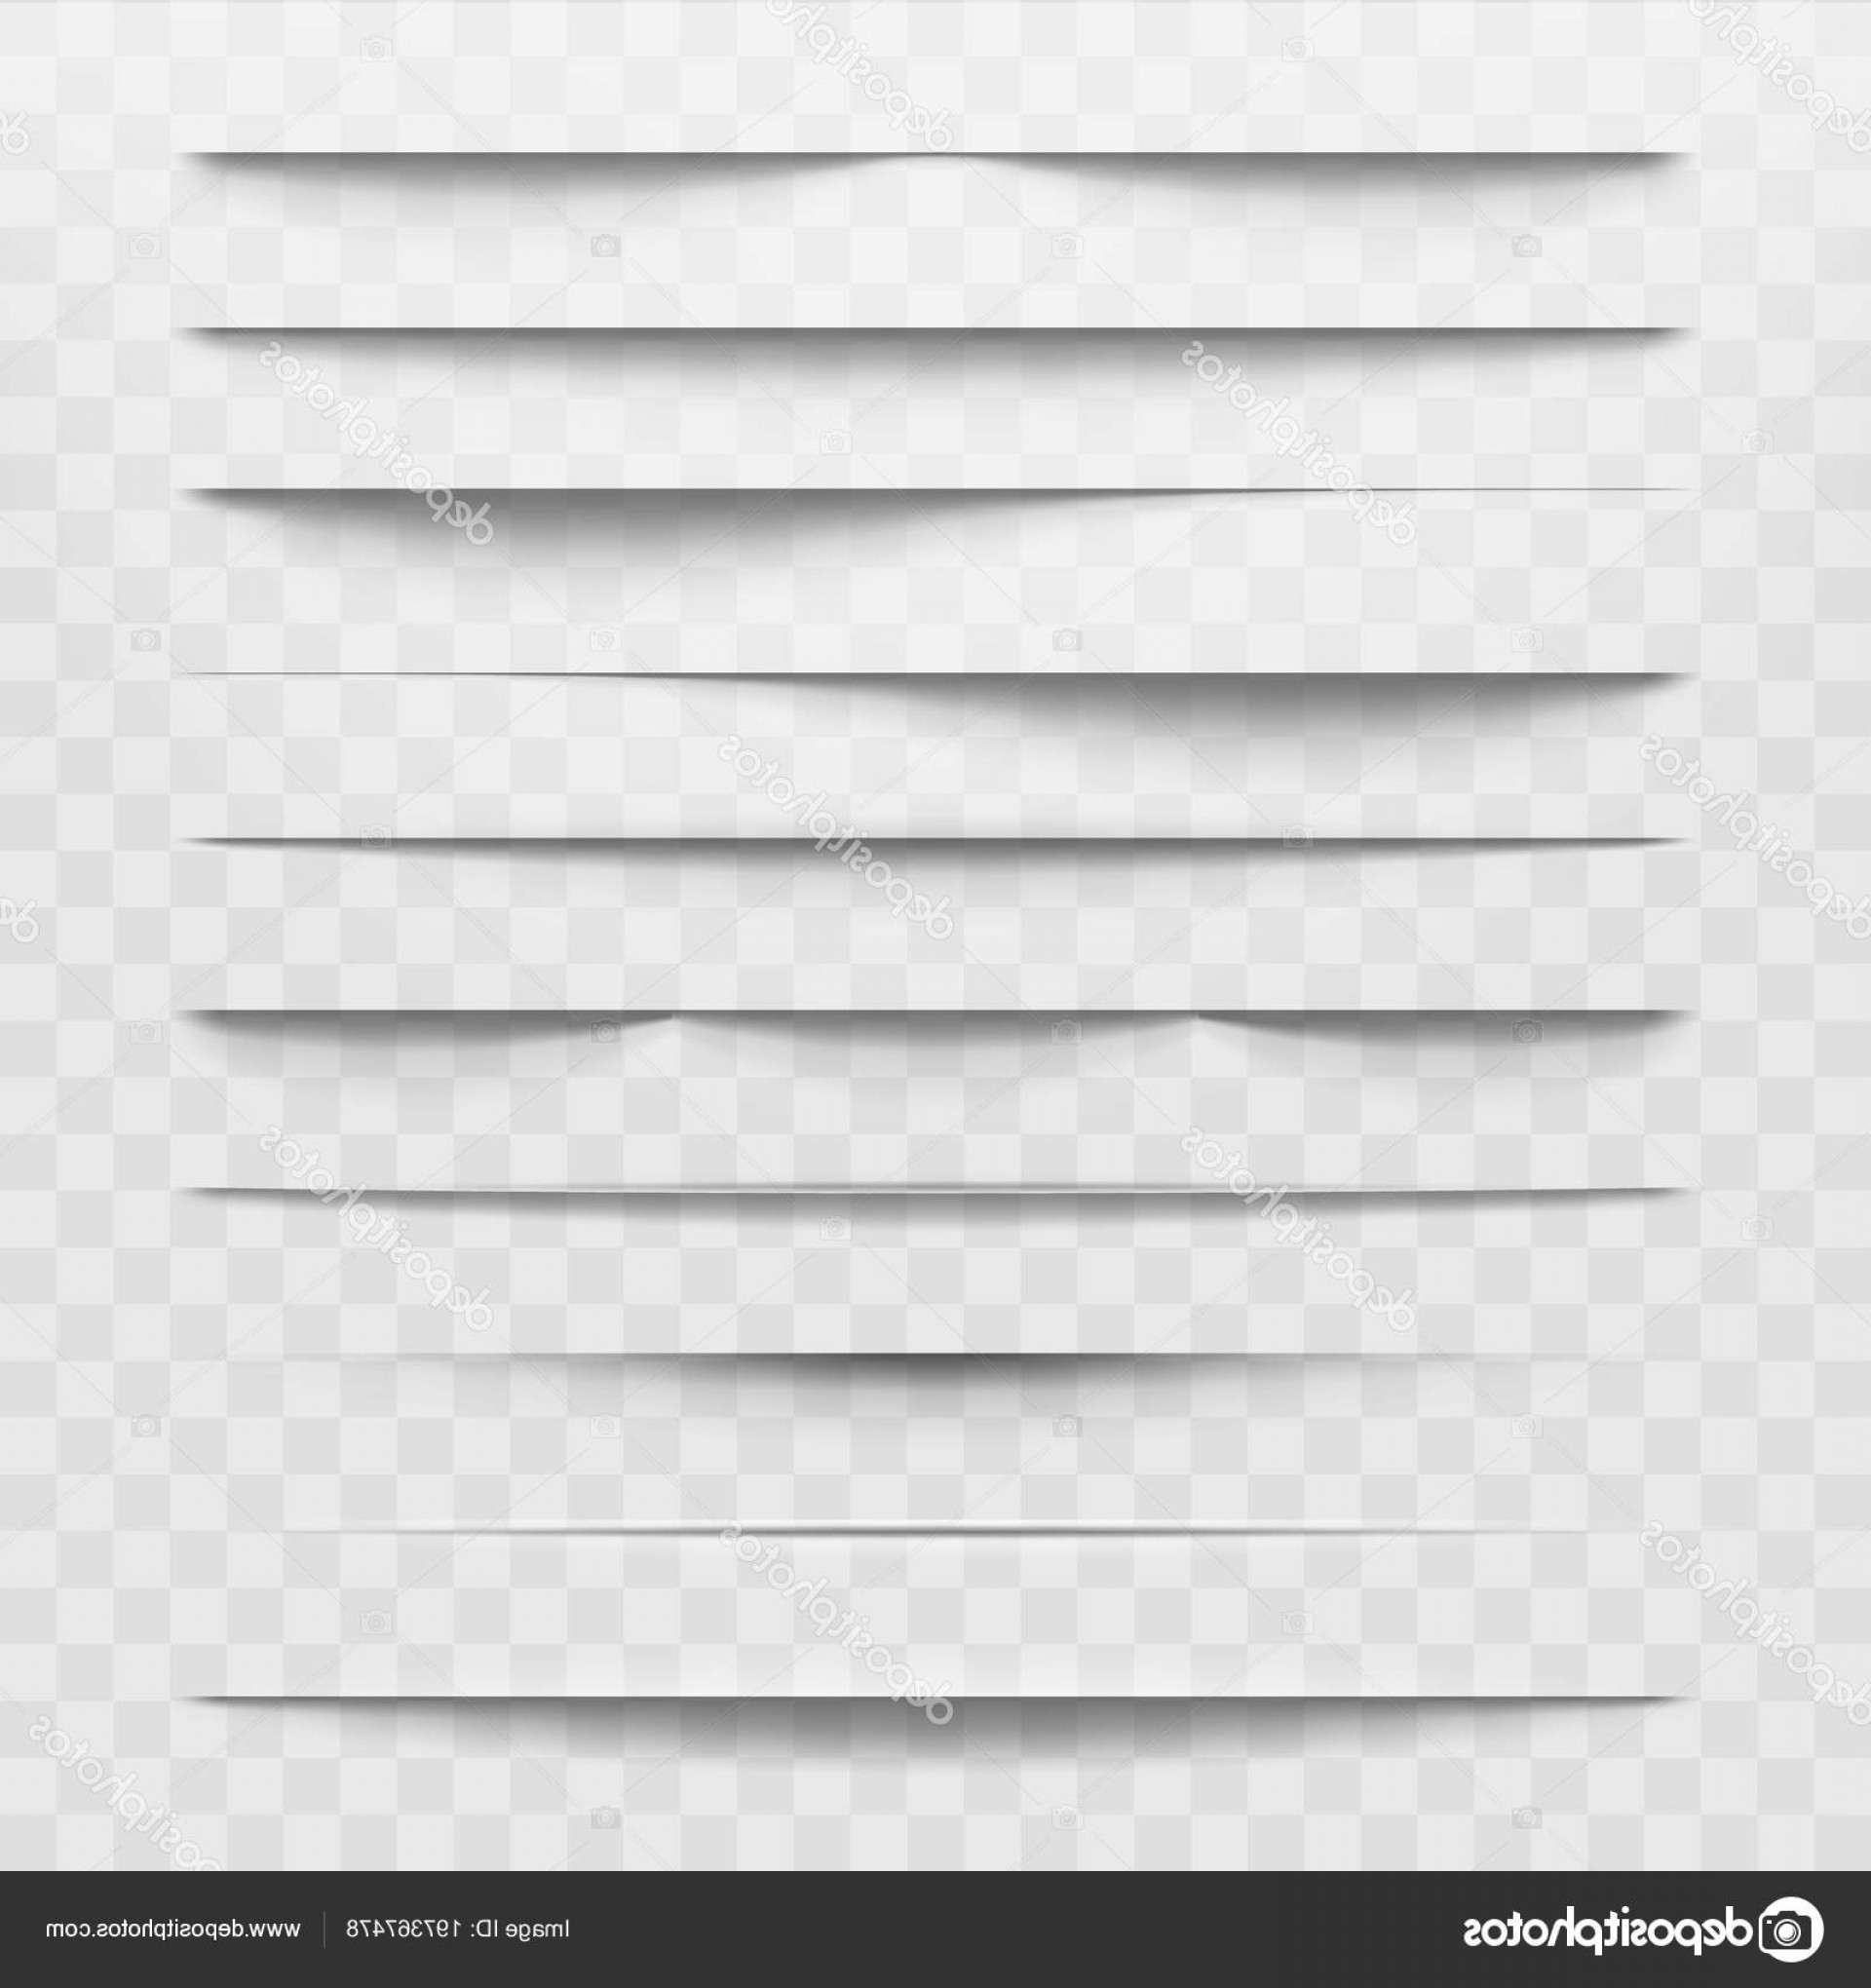 Vector Line Dividers Transparent Backgrounds: Stock Illustration Isolated Shadow Dividers On Transparent